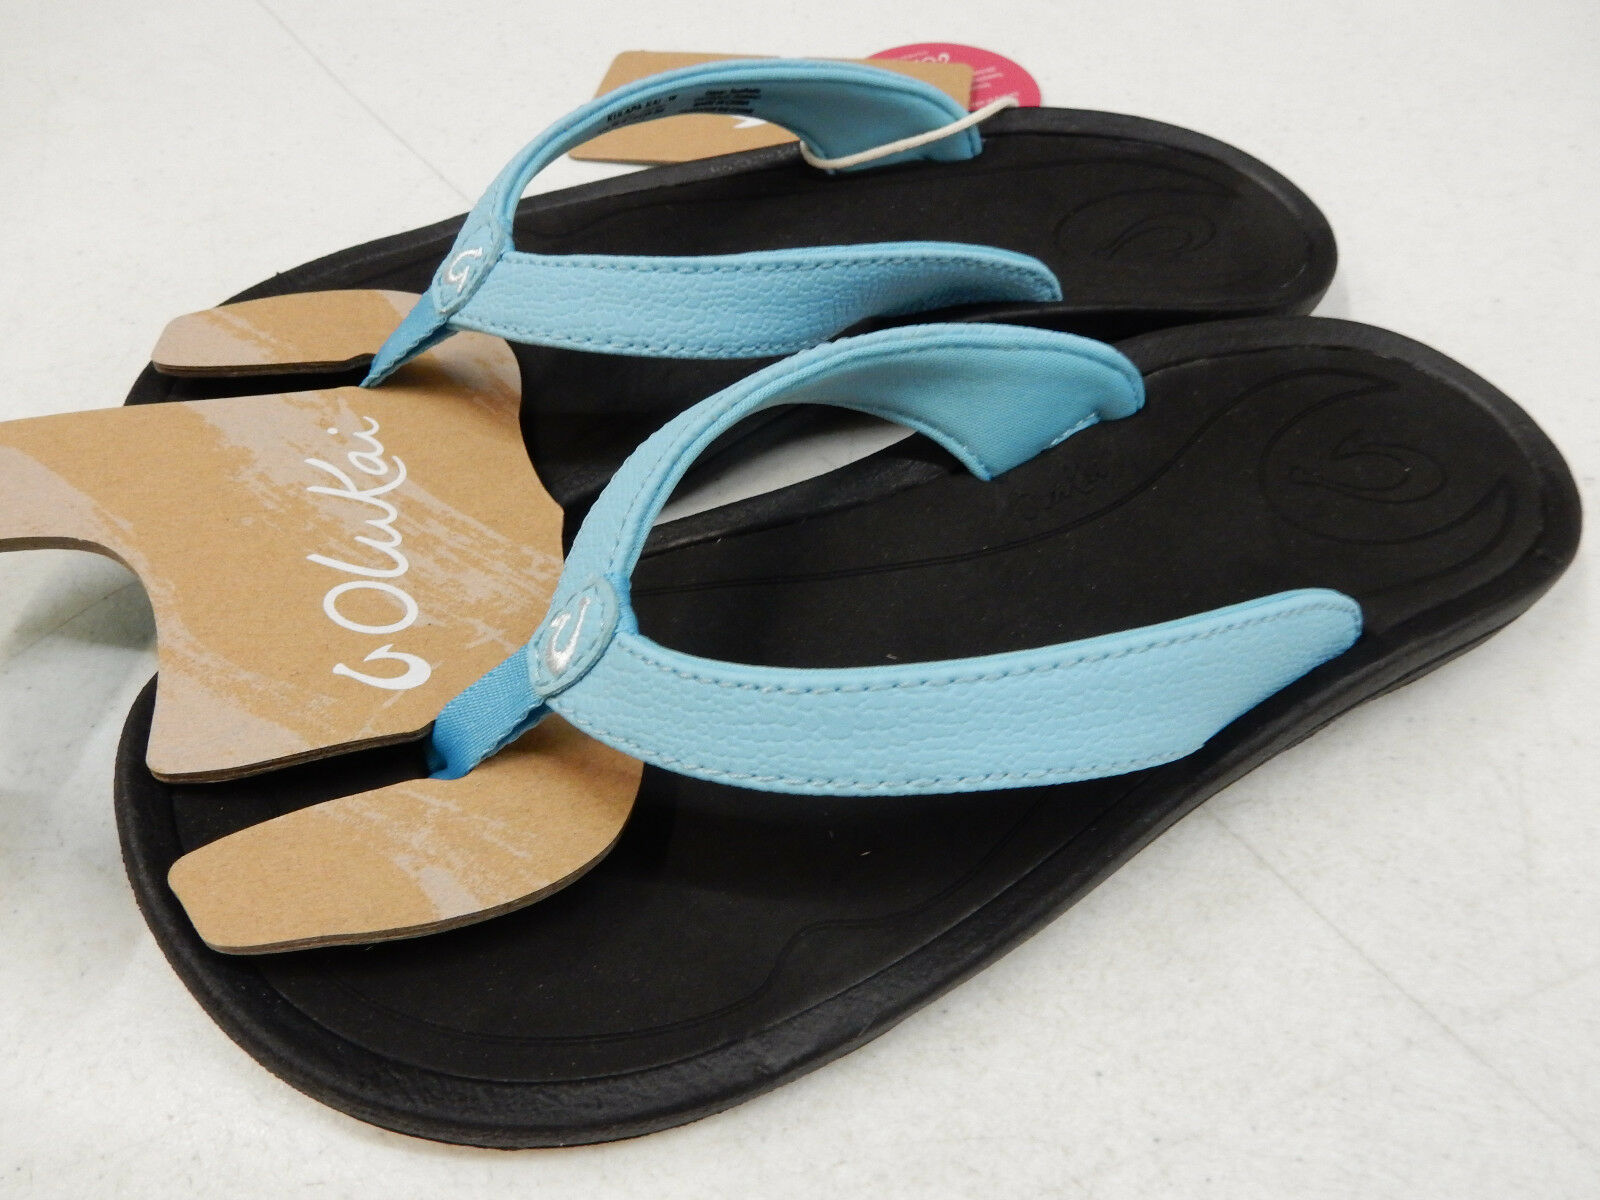 OLUKAI Damenschuhe SANDALS KULAPA KAI COTTON CANDY BLACK SIZE 7